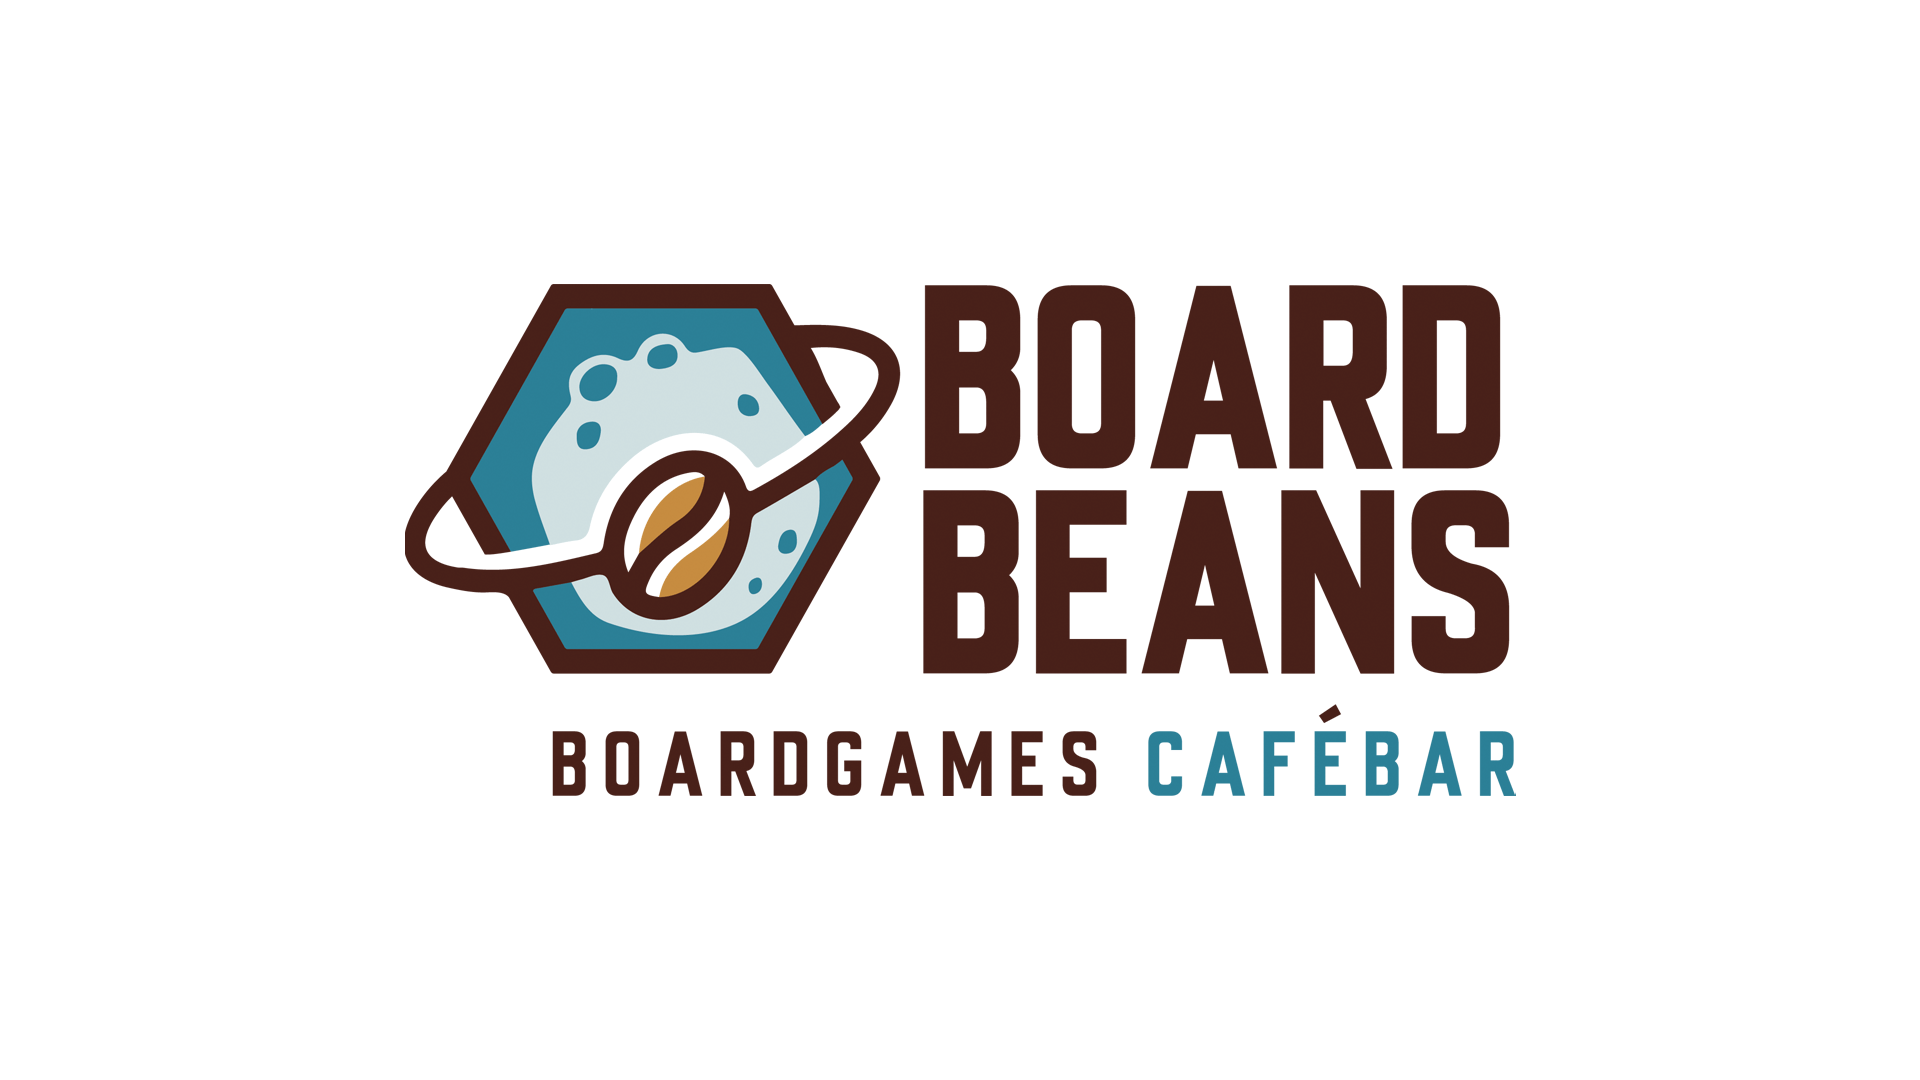 Board Beans Board Games Cafe Bar Northwich Promo Video Bee Bold Films